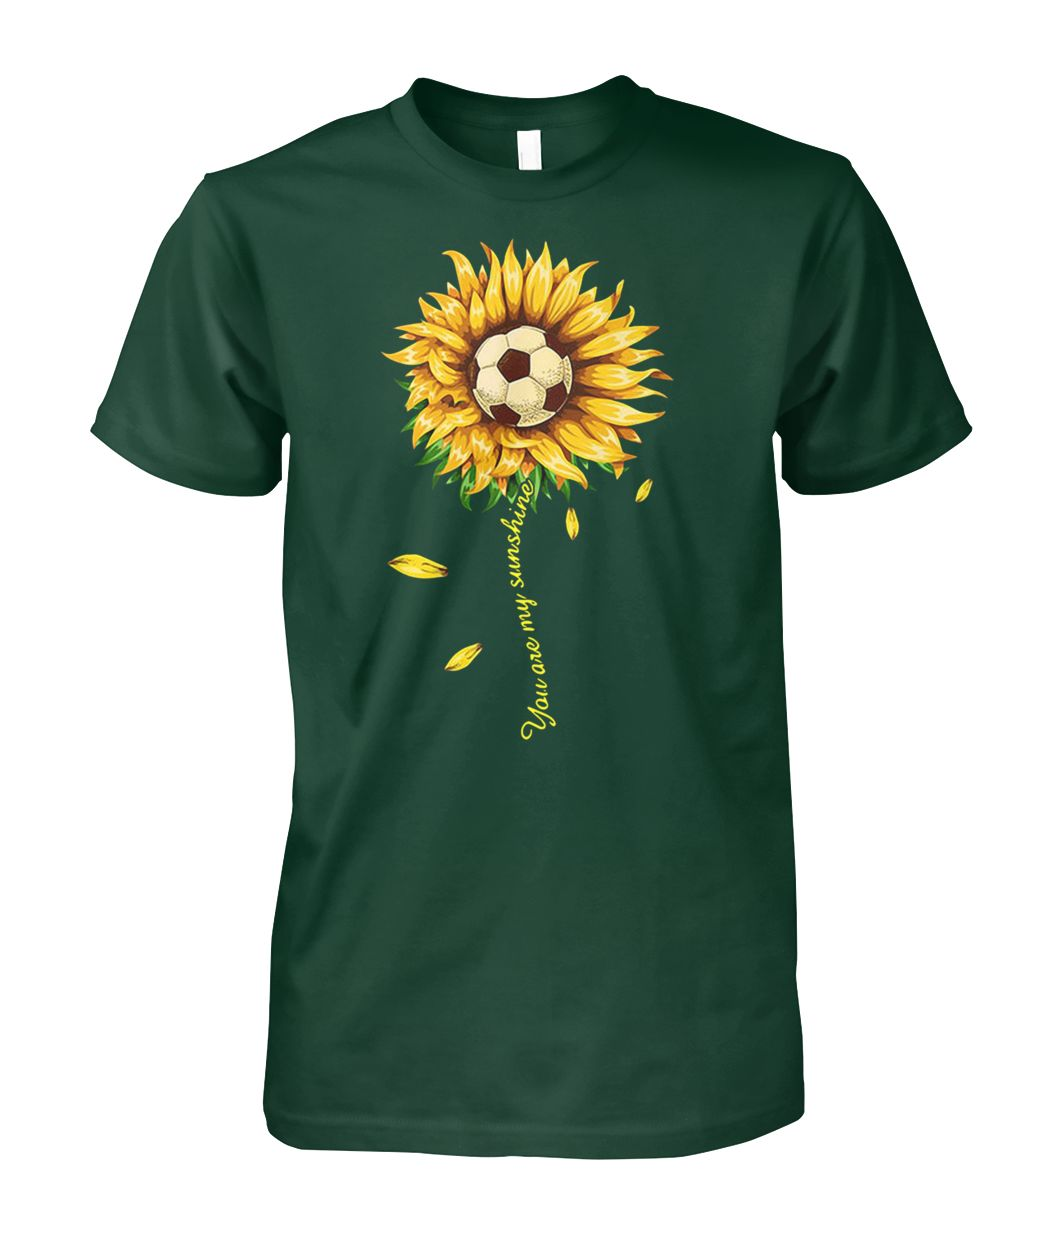 [Hot version] Soccer ball sunflower you are my sunshine shirt